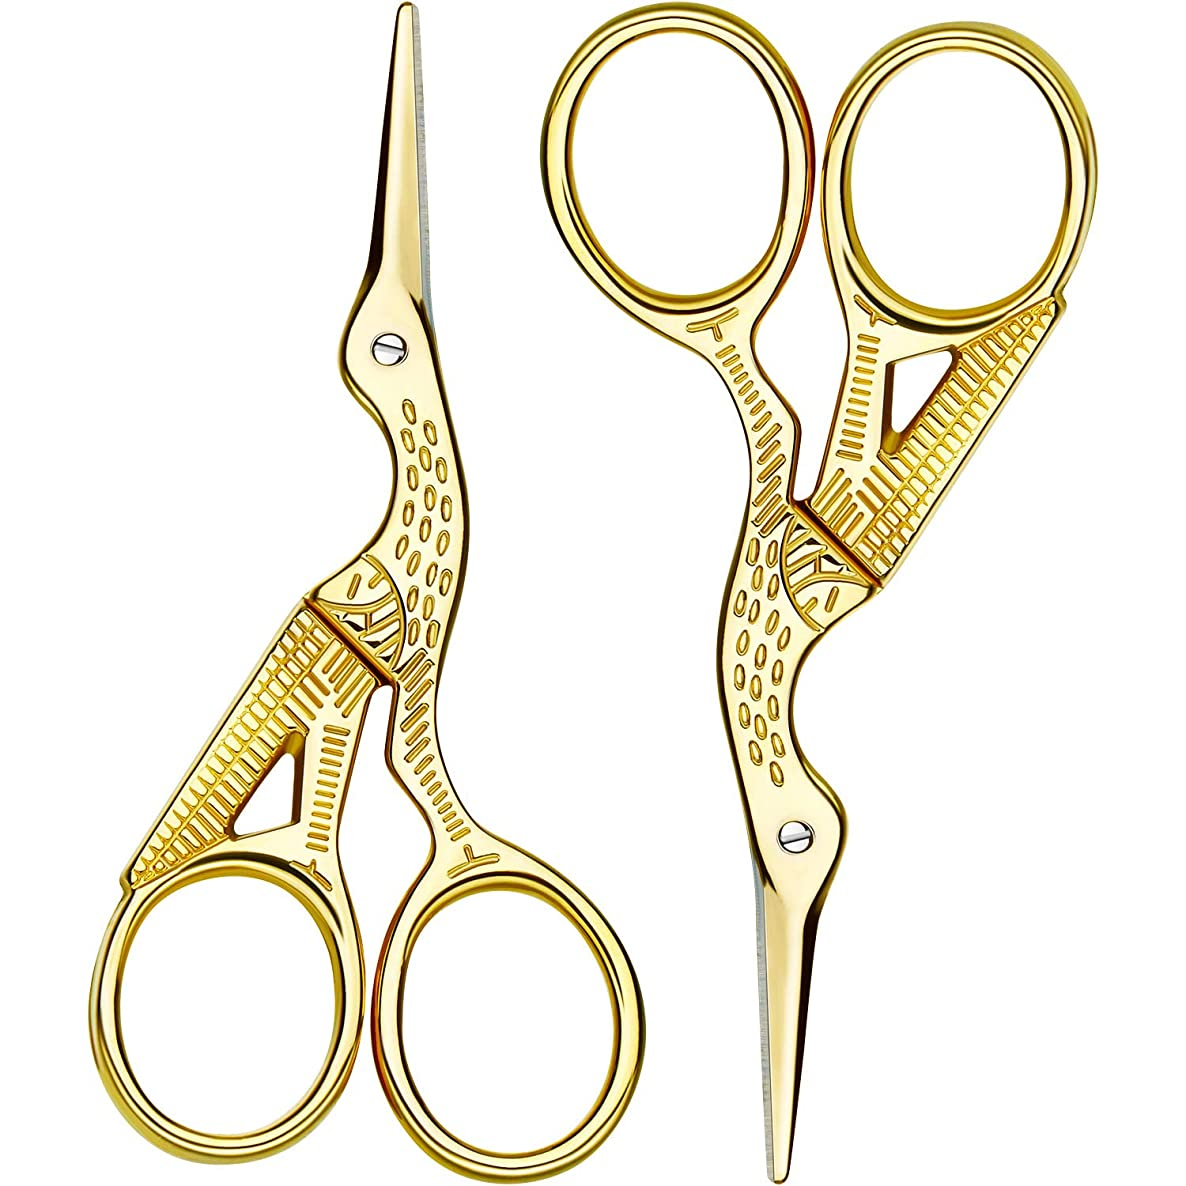 2 Pack Stork Scissors Embroidery Scissors Sewing Scissors Brow Shaping Scissors Small for Crafting, Art Work, Threading, Needlework, Stainless Steel, 3.6 Inch (Gold)